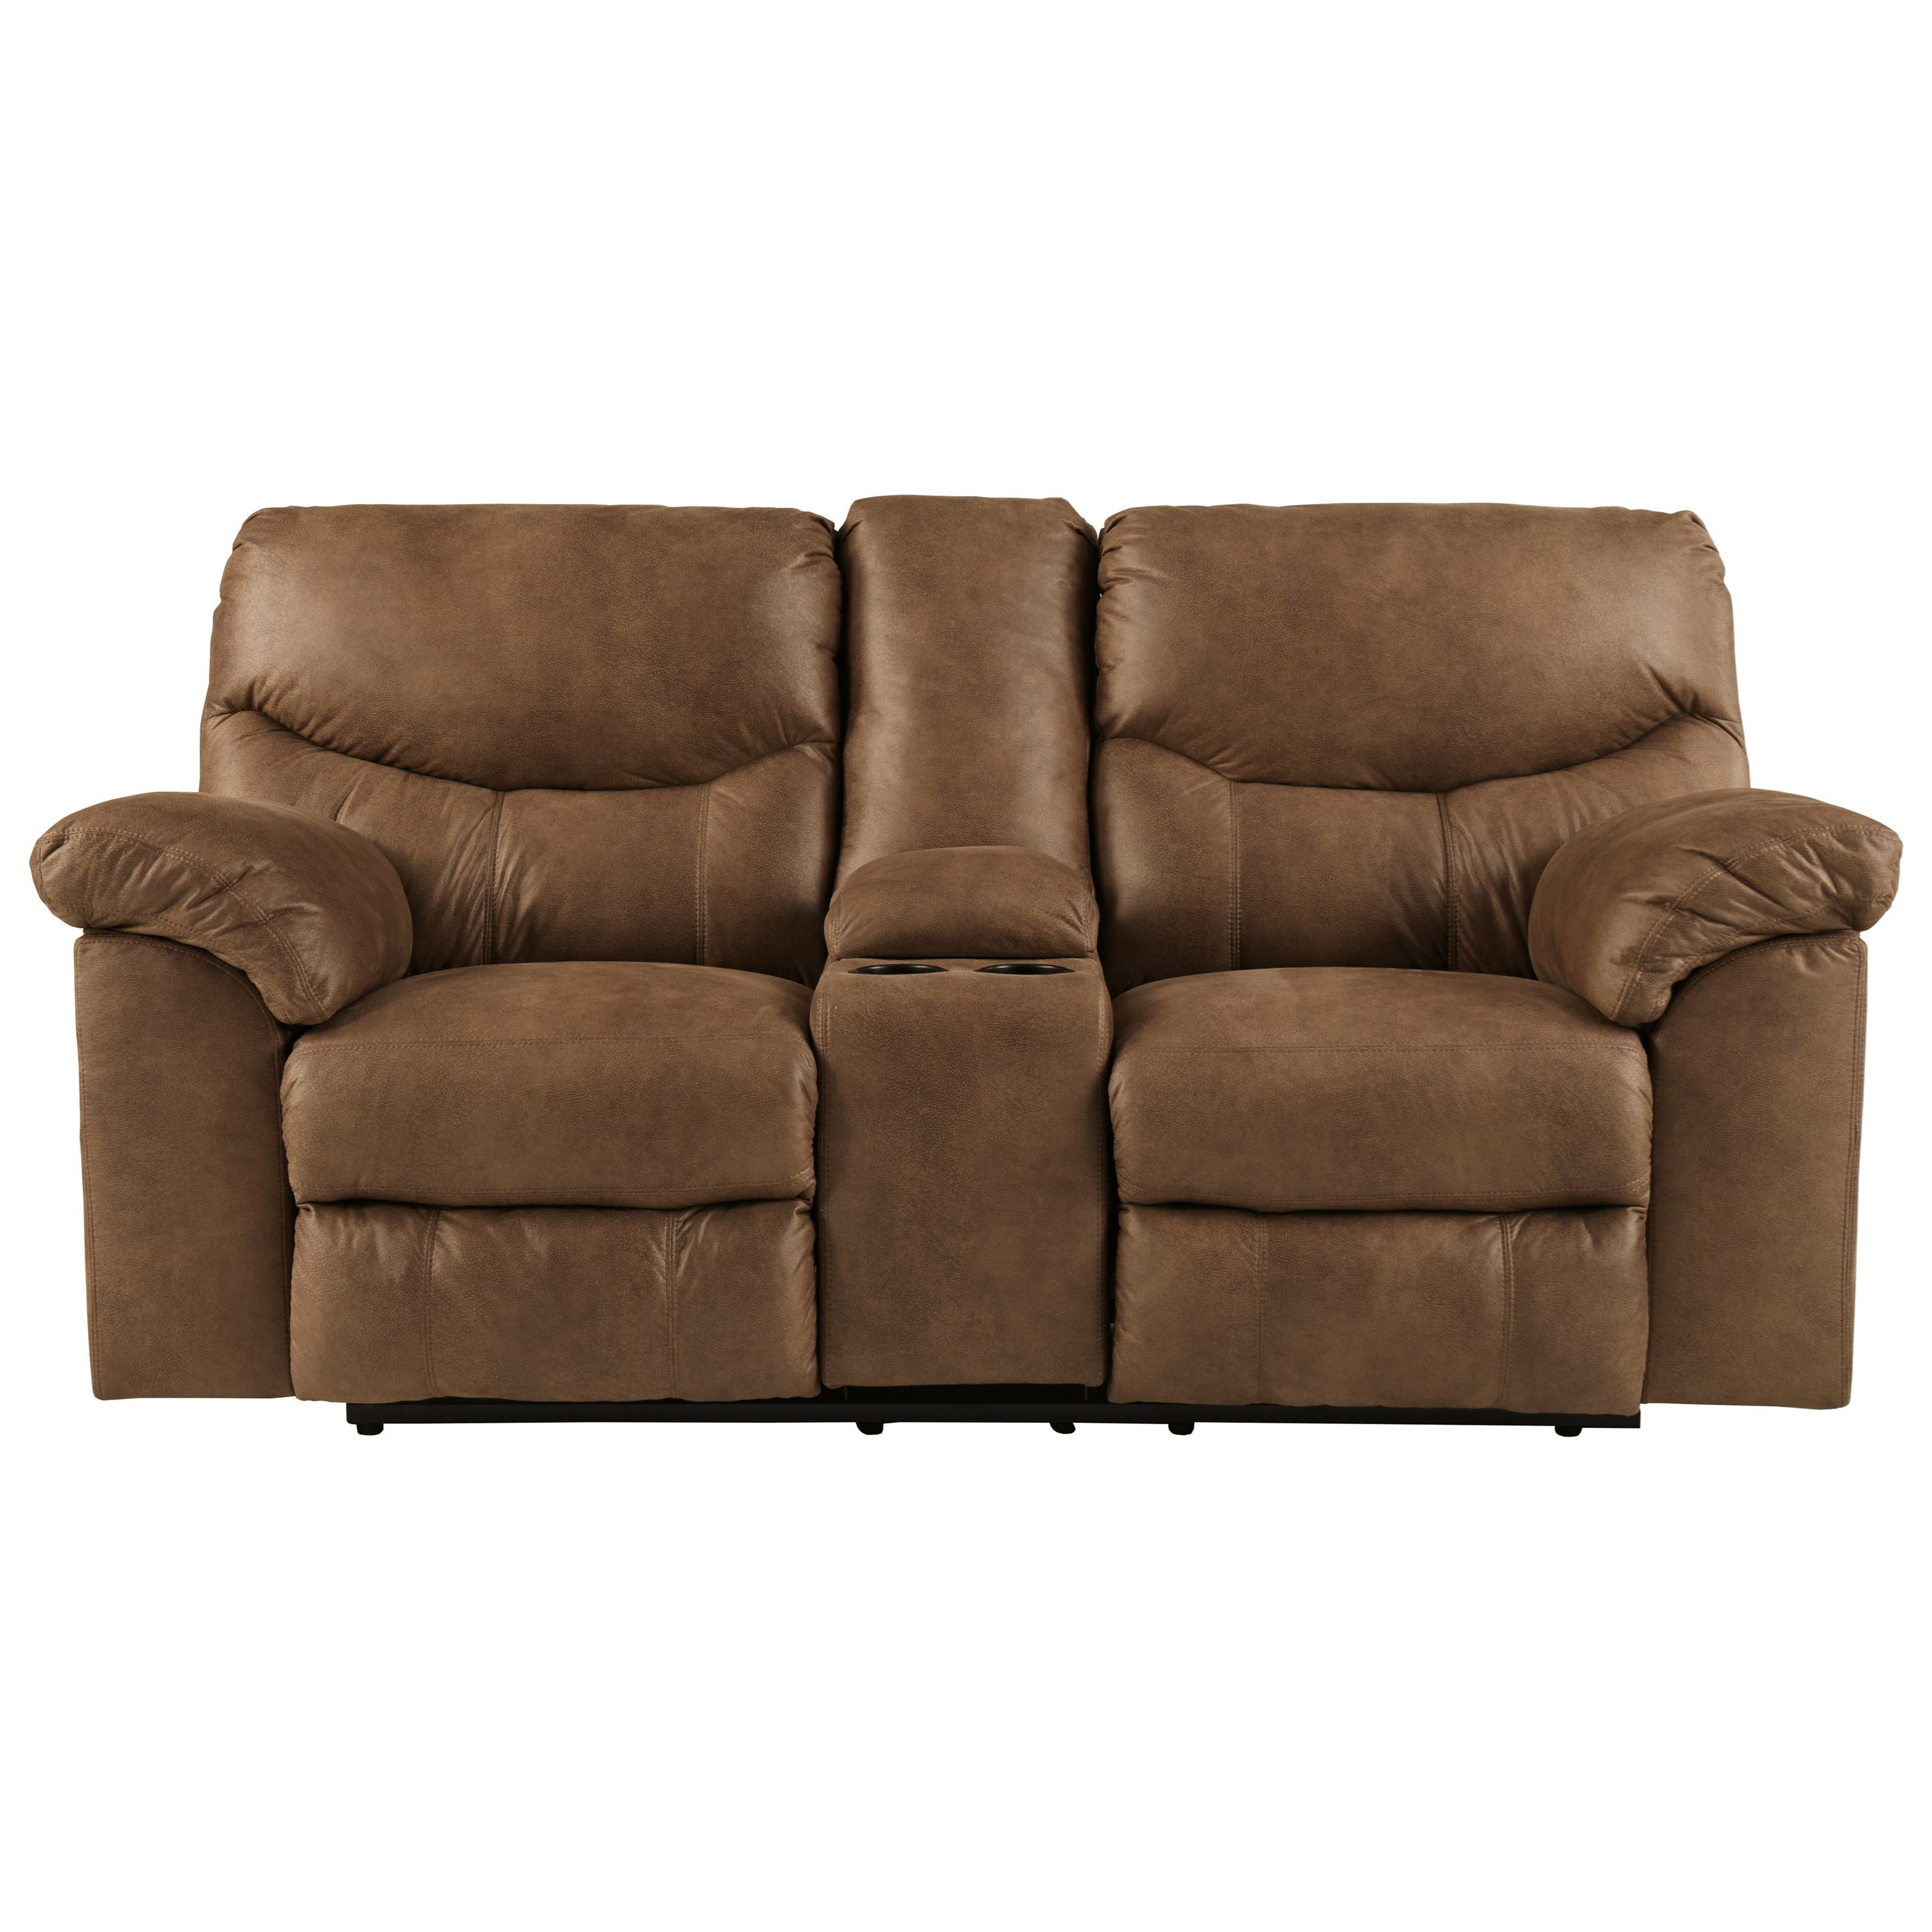 Boxberg Double Reclining Loveseat with Console by Signature Design by Ashley at Northeast Factory Direct